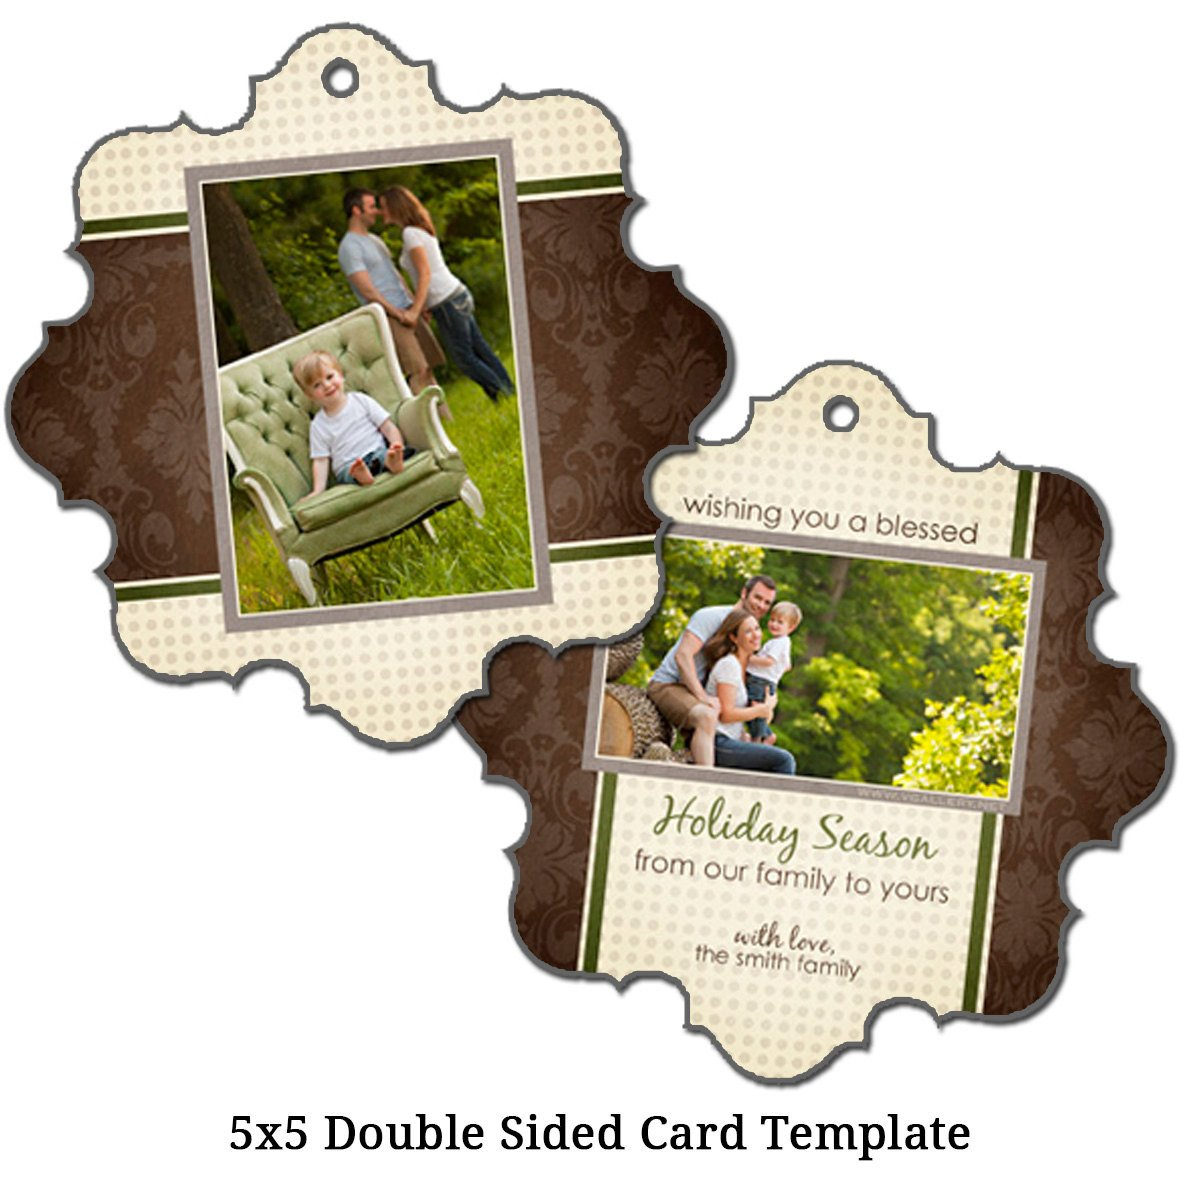 Two Sided Postcard Template 5x5 Double Sided Christmas Card Template by Vgallerydesigns